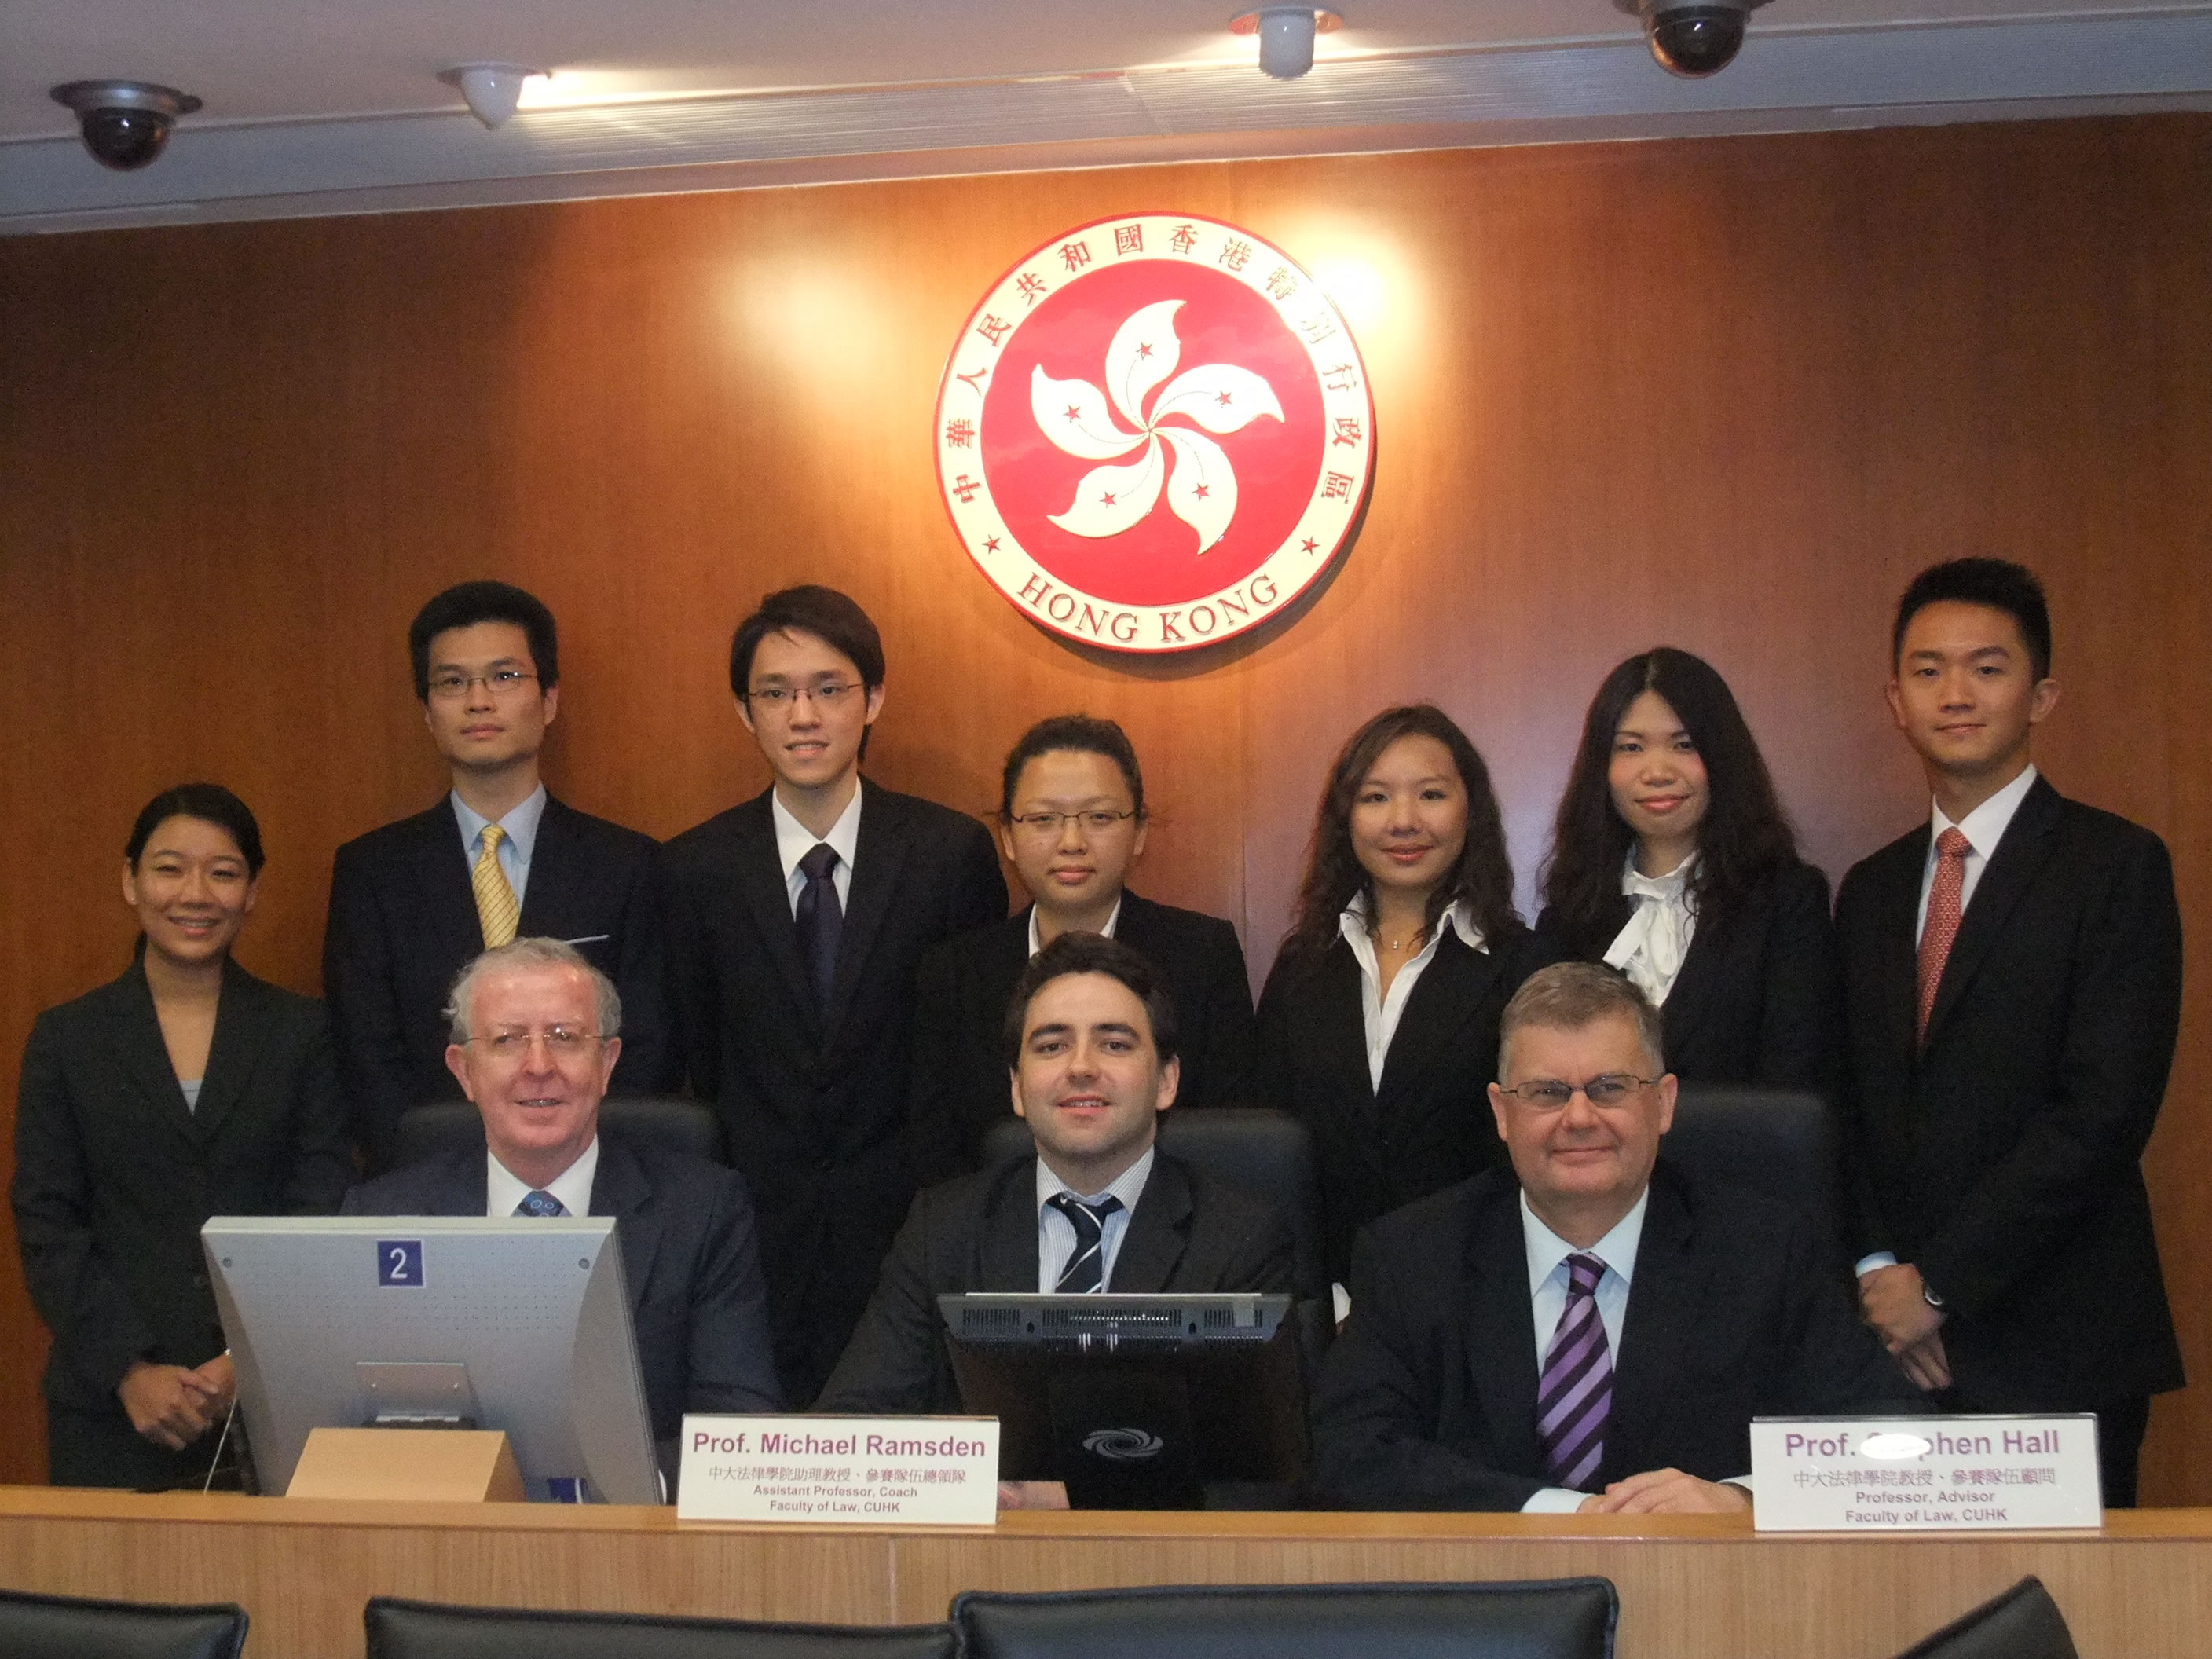 (From left, front row) Prof. Mike McConville, CUHK Dean of Law; Prof. Michael Ramsden, Assistant Professor, Faculty of Law; Prof. Stephen Hall, Professor, Faculty of Law (From left, back row) Ms. Helen Yu , Instructor, Faculty of Law; Peter Hsiao-pen Chang; Roger Phang; Vinca Yau; Cora Ang; Ms. Carol Lee; and Patrick Siu